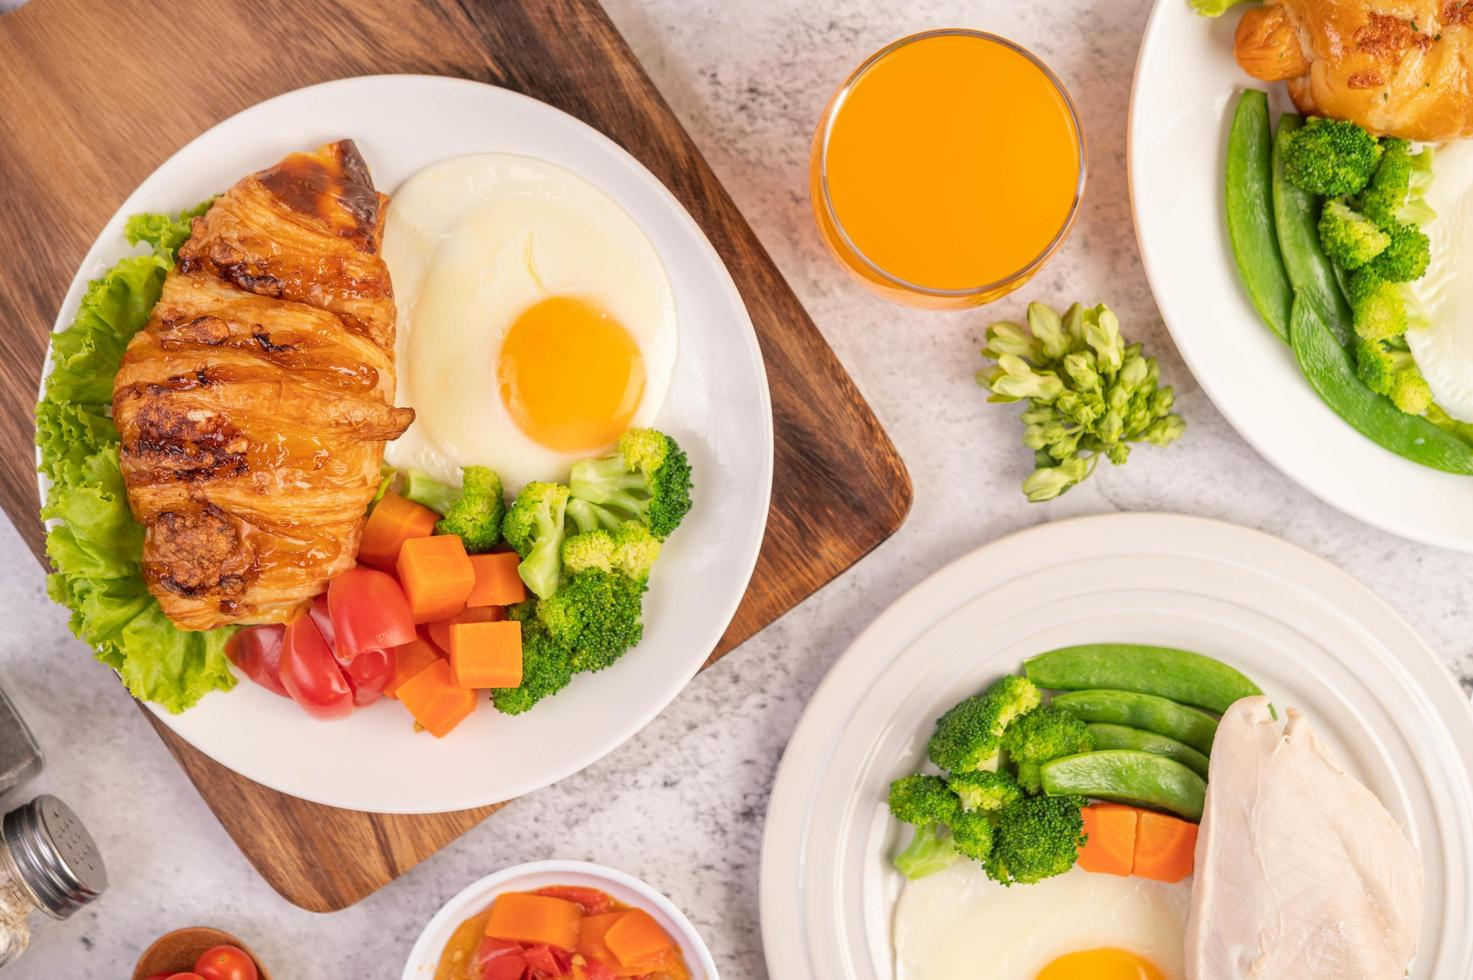 Breakfast spread of chicken, fried eggs, broccoli, carrots, tomatoes and lettuce photo